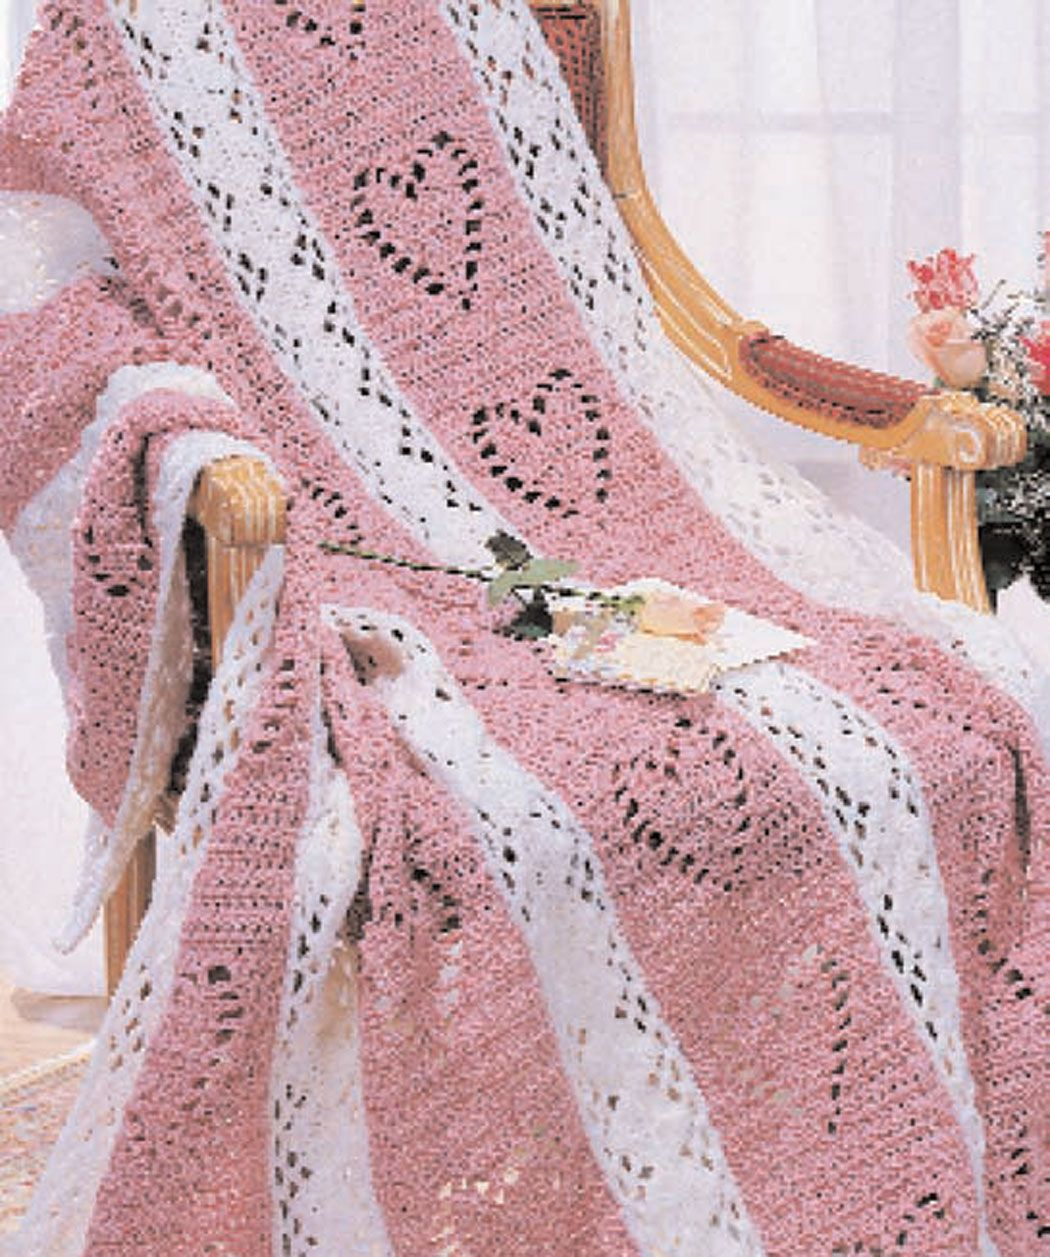 Crochet Wedding Gift Patterns: Hearts & Diamonds How Pretty For A Little Girl Or For A